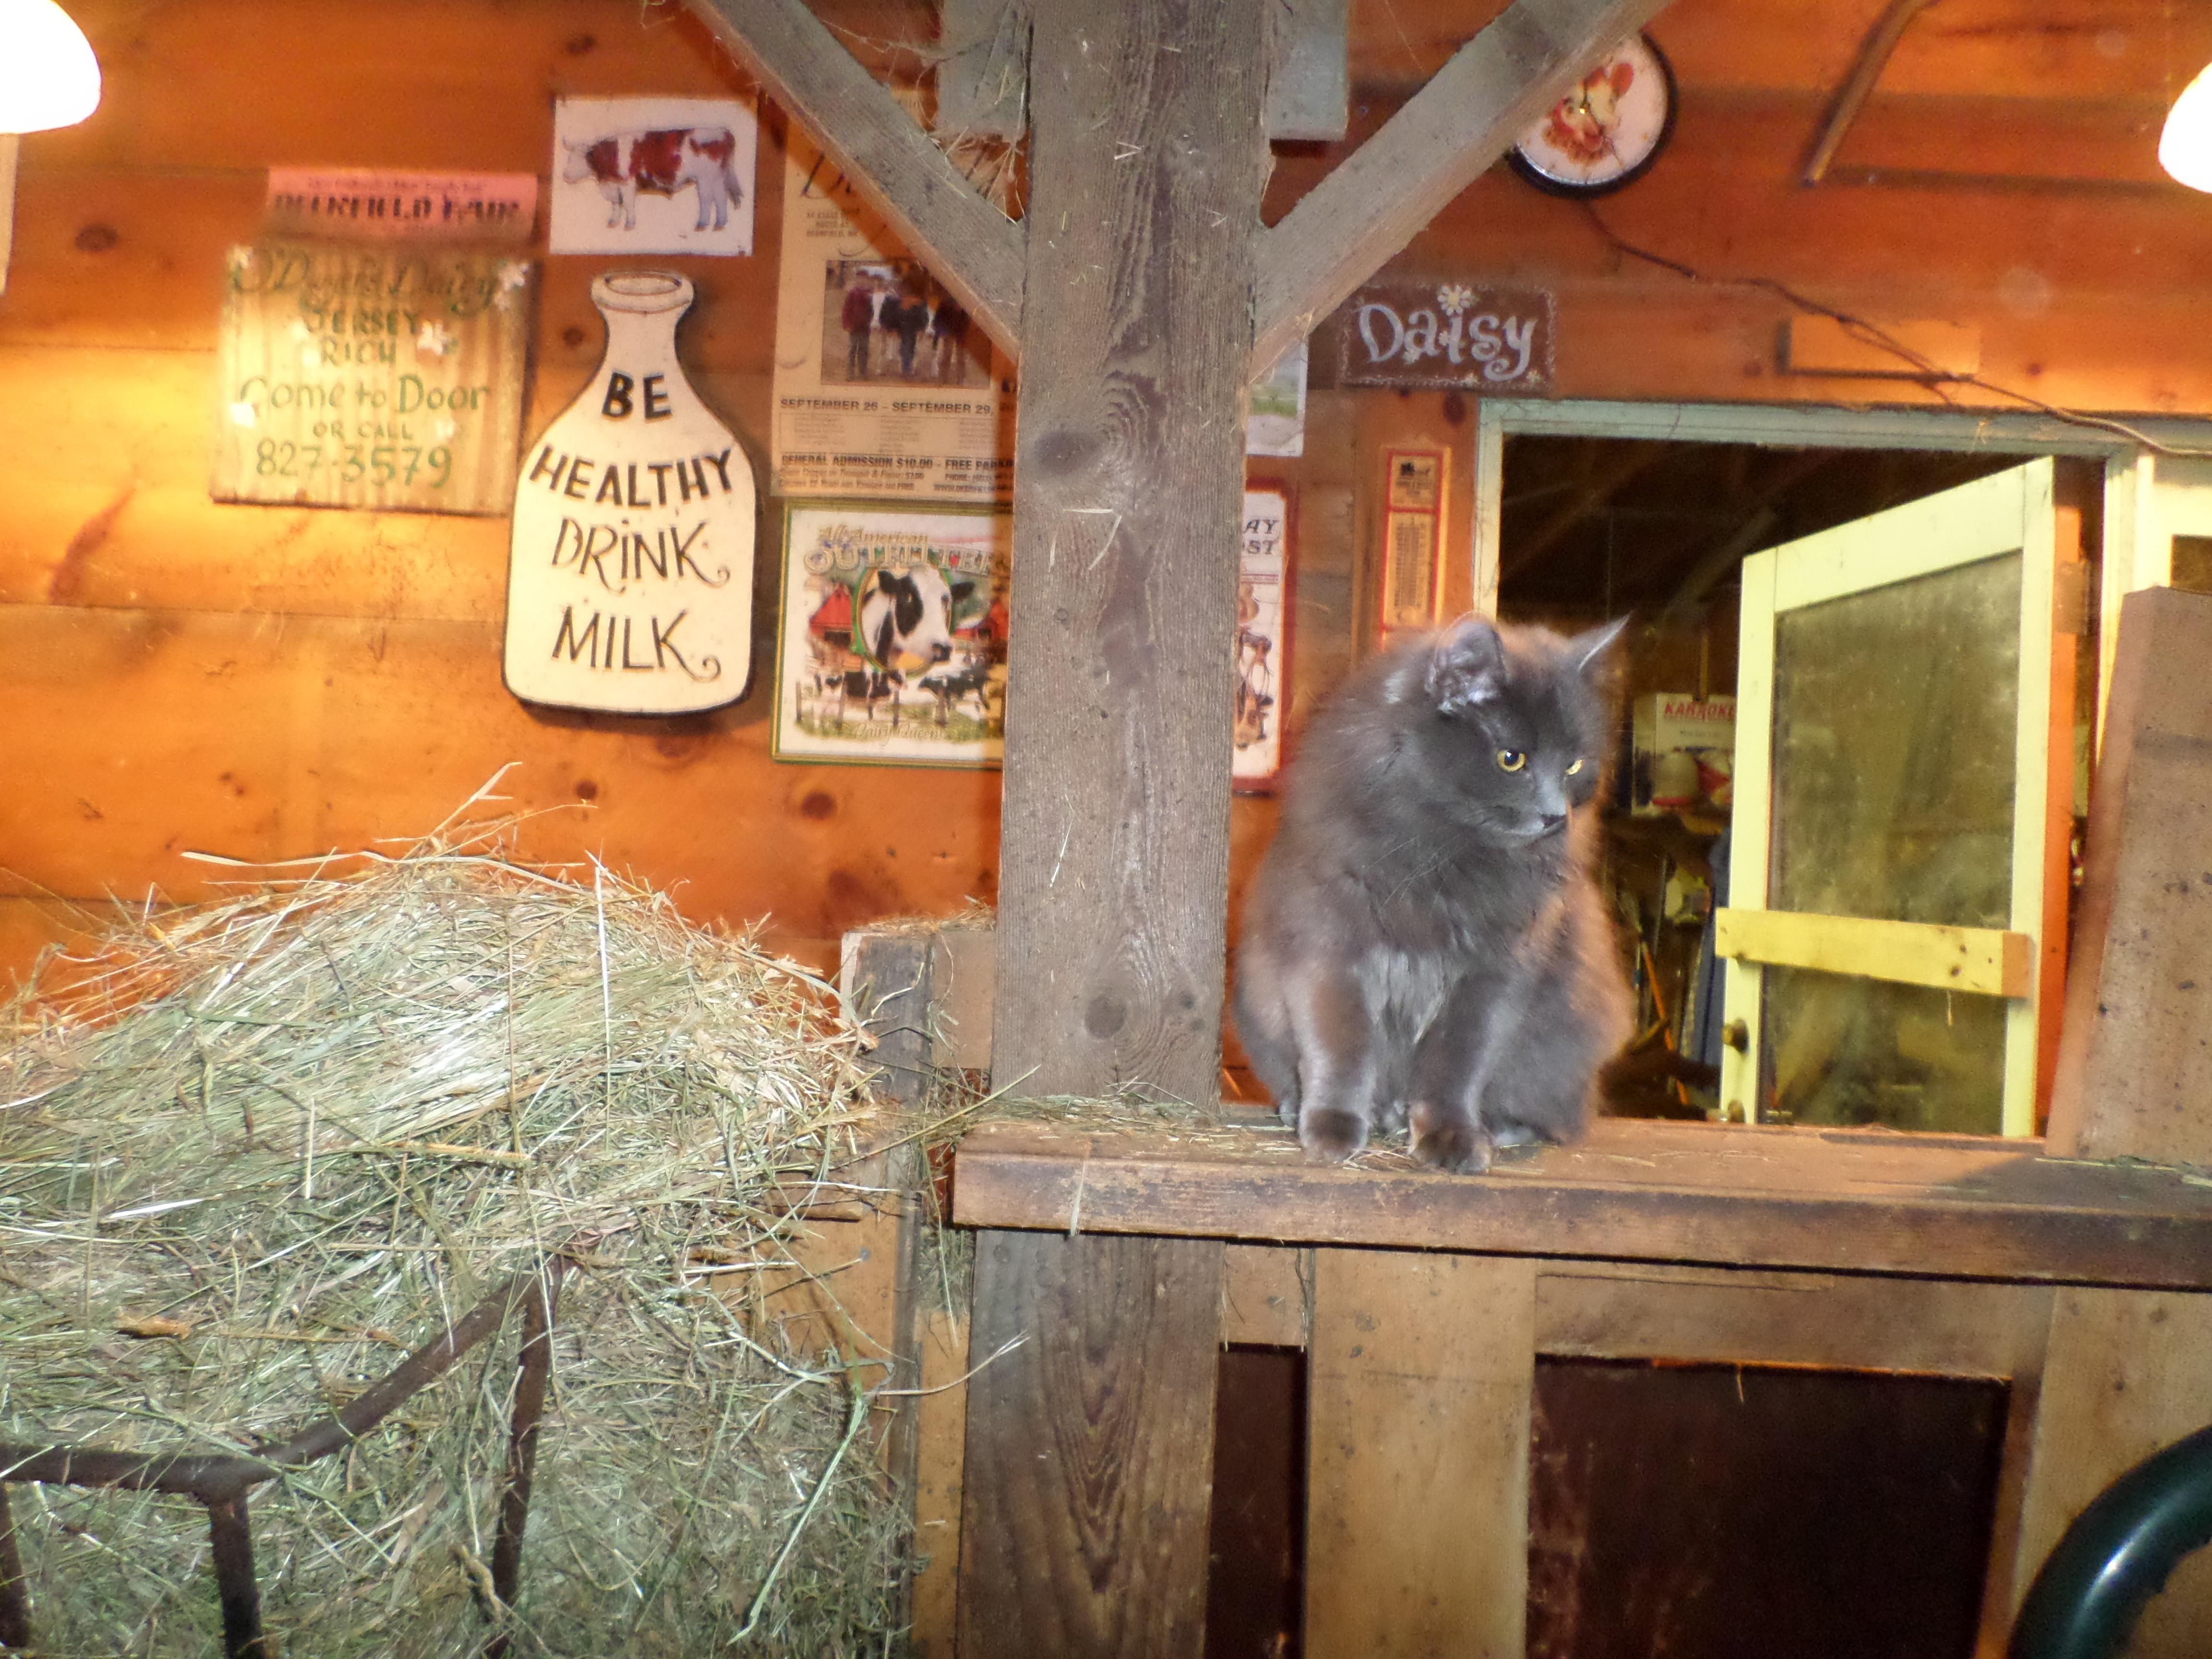 Ursula helping in the barn.